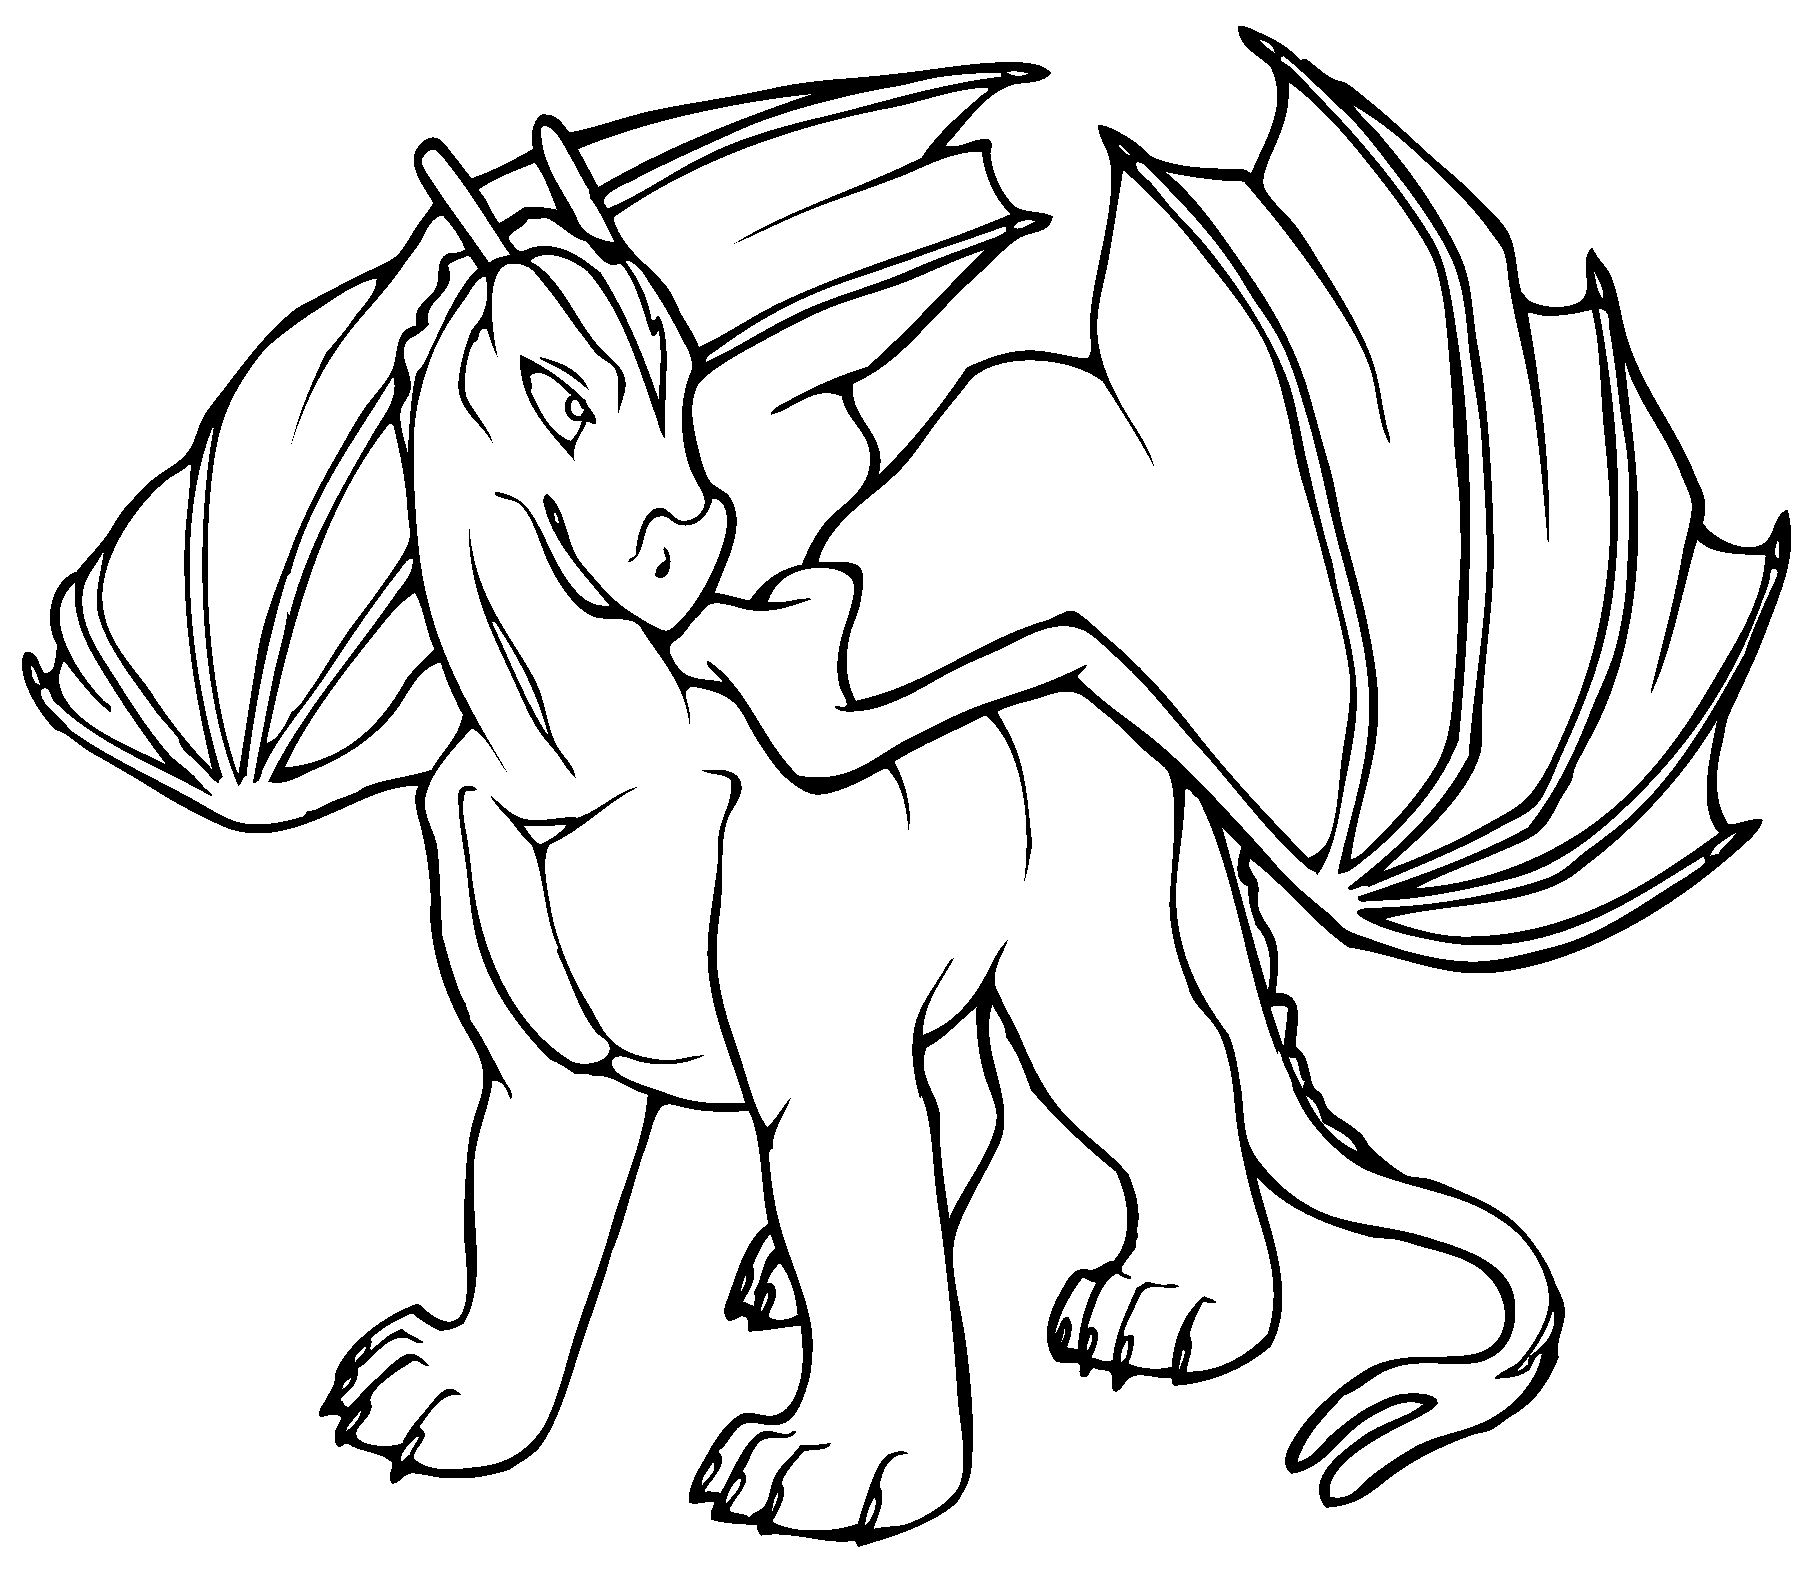 1812x1573 Cartoon Dragon Coloring Pages On Coloring Page Dragon Coloring